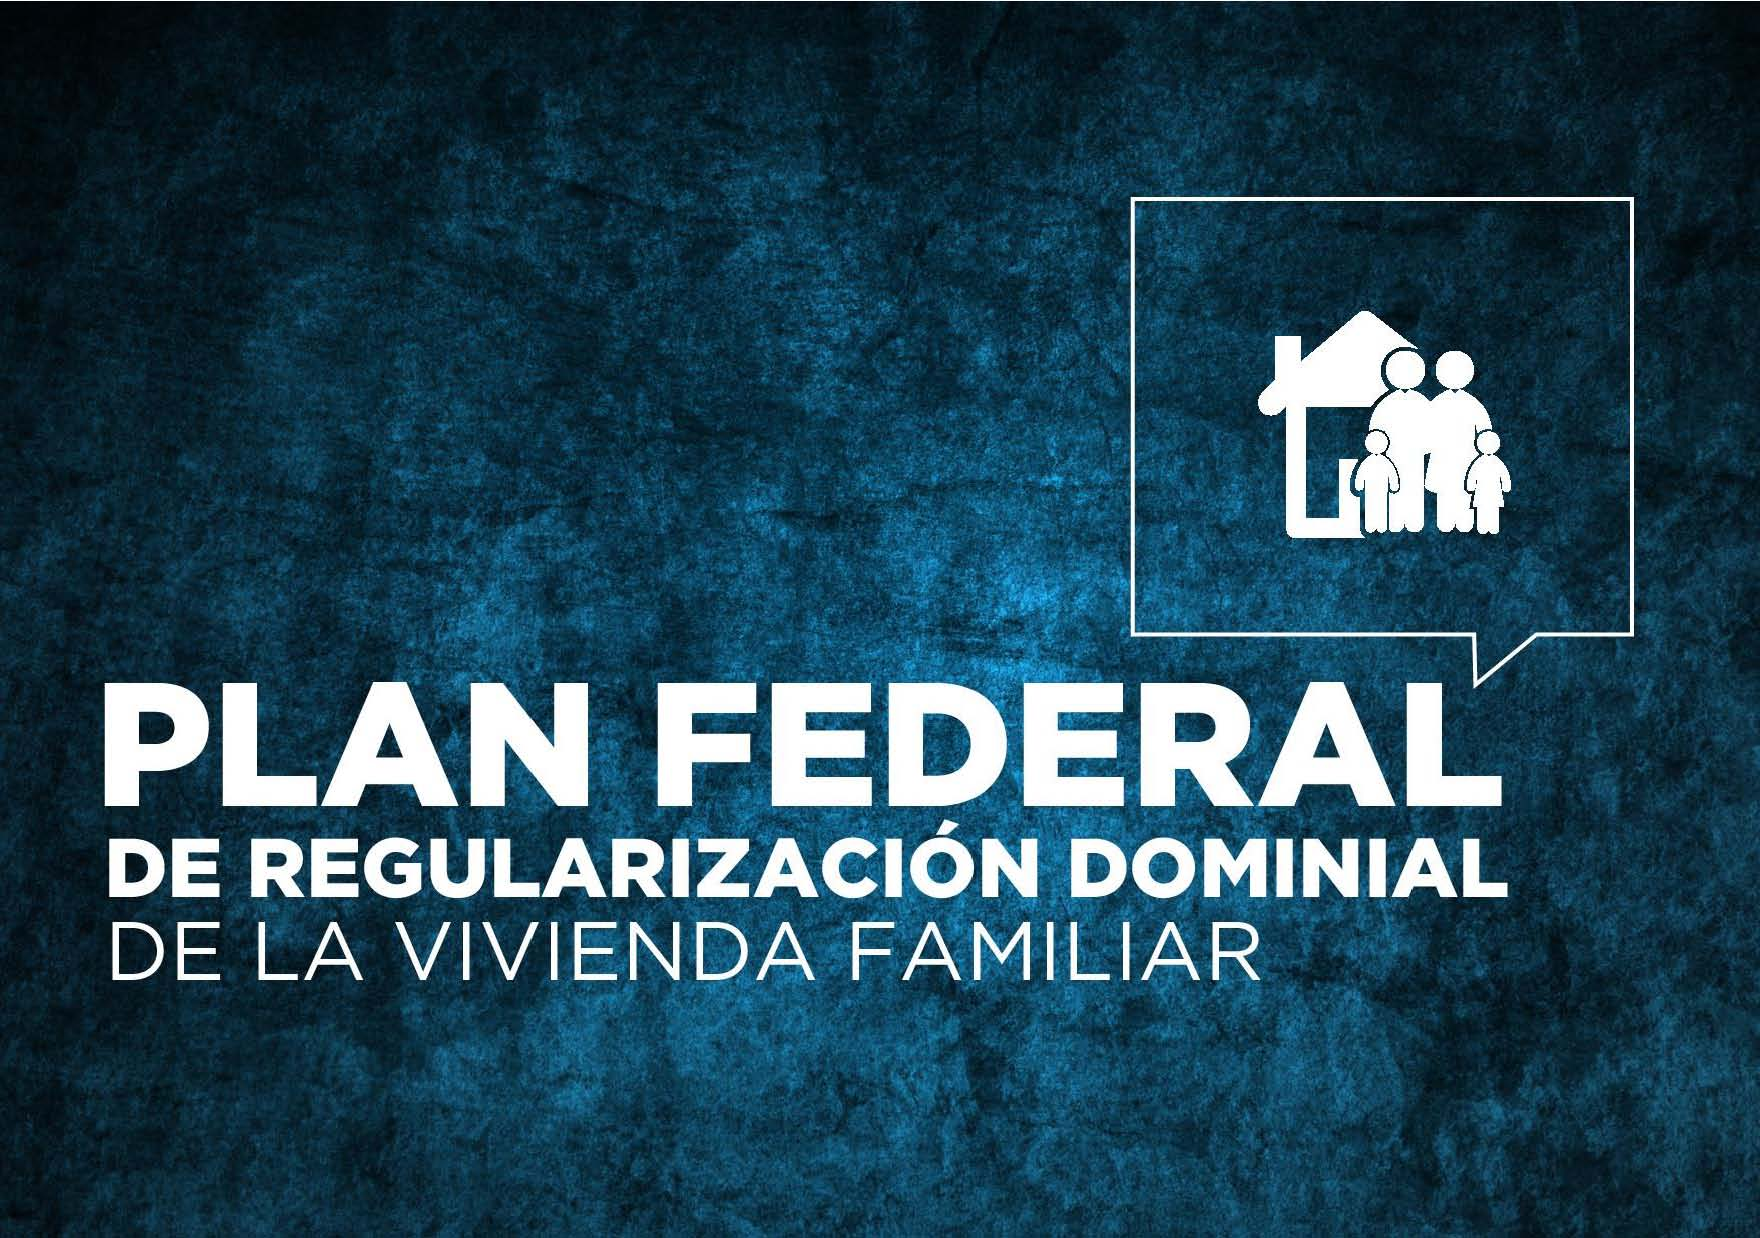 Presentamos el Plan Federal de Regularización Dominial de la Vivienda Familiar